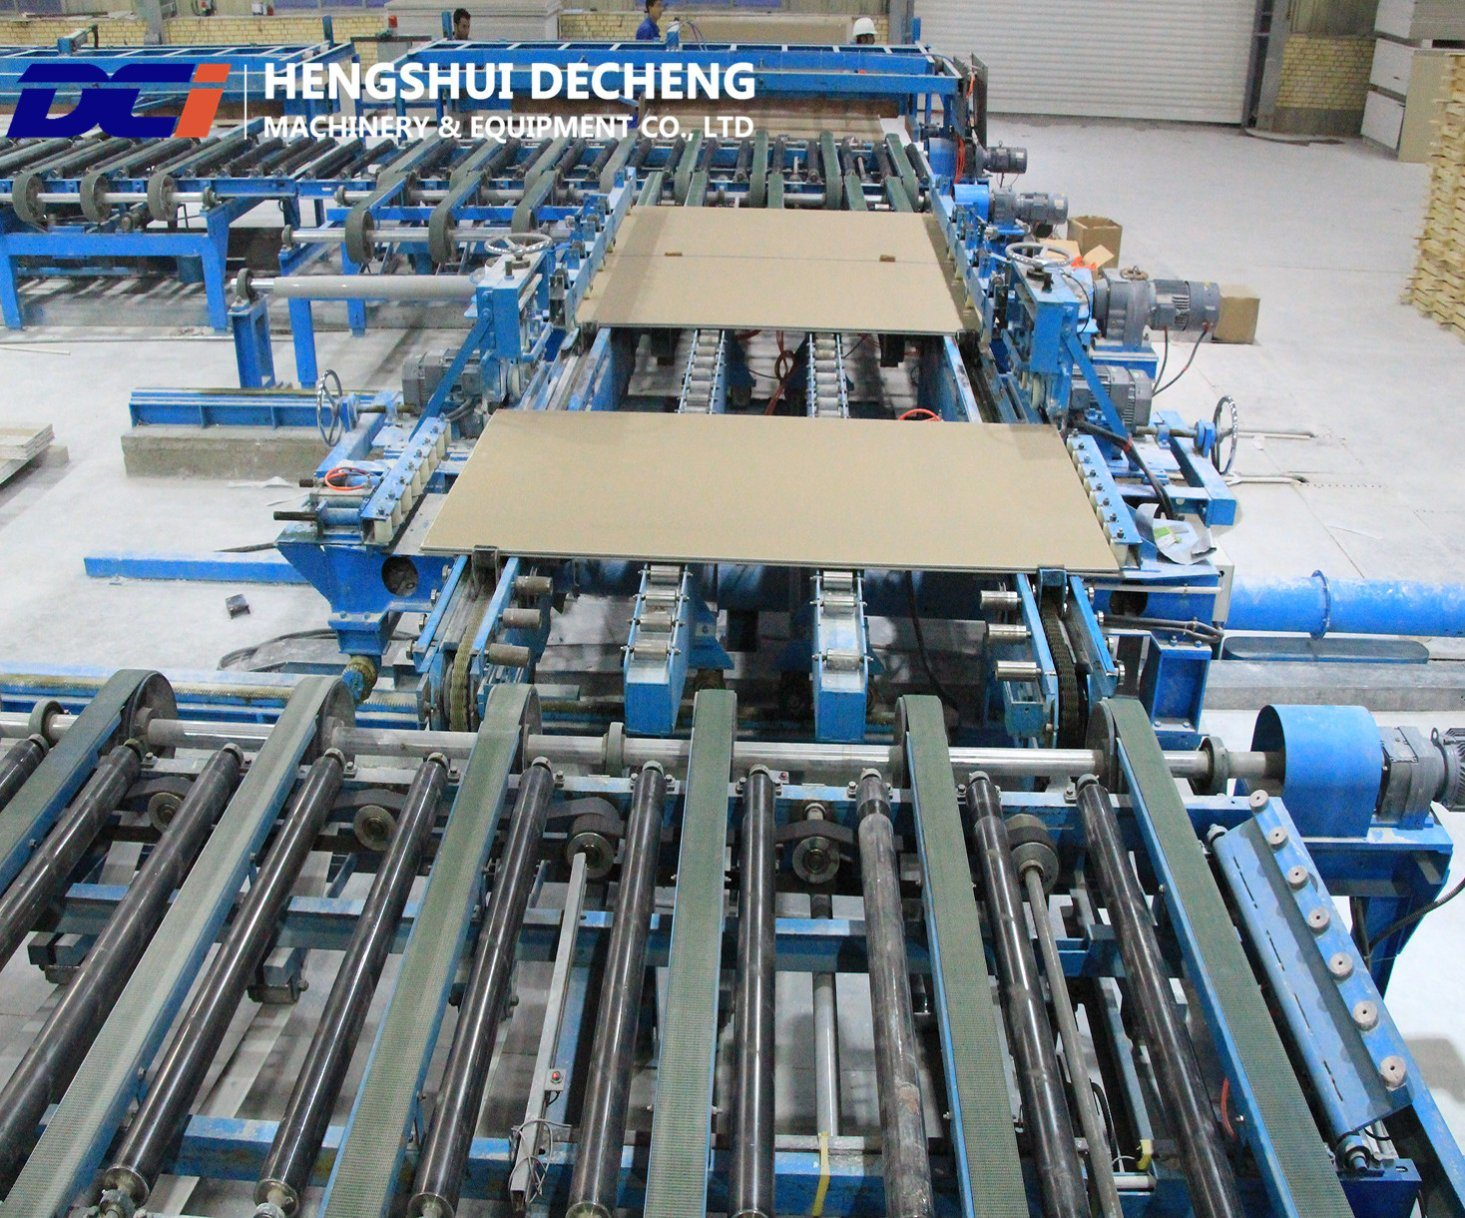 [Hot Item] Production Complete for Gypsum Board Manufacturing Line